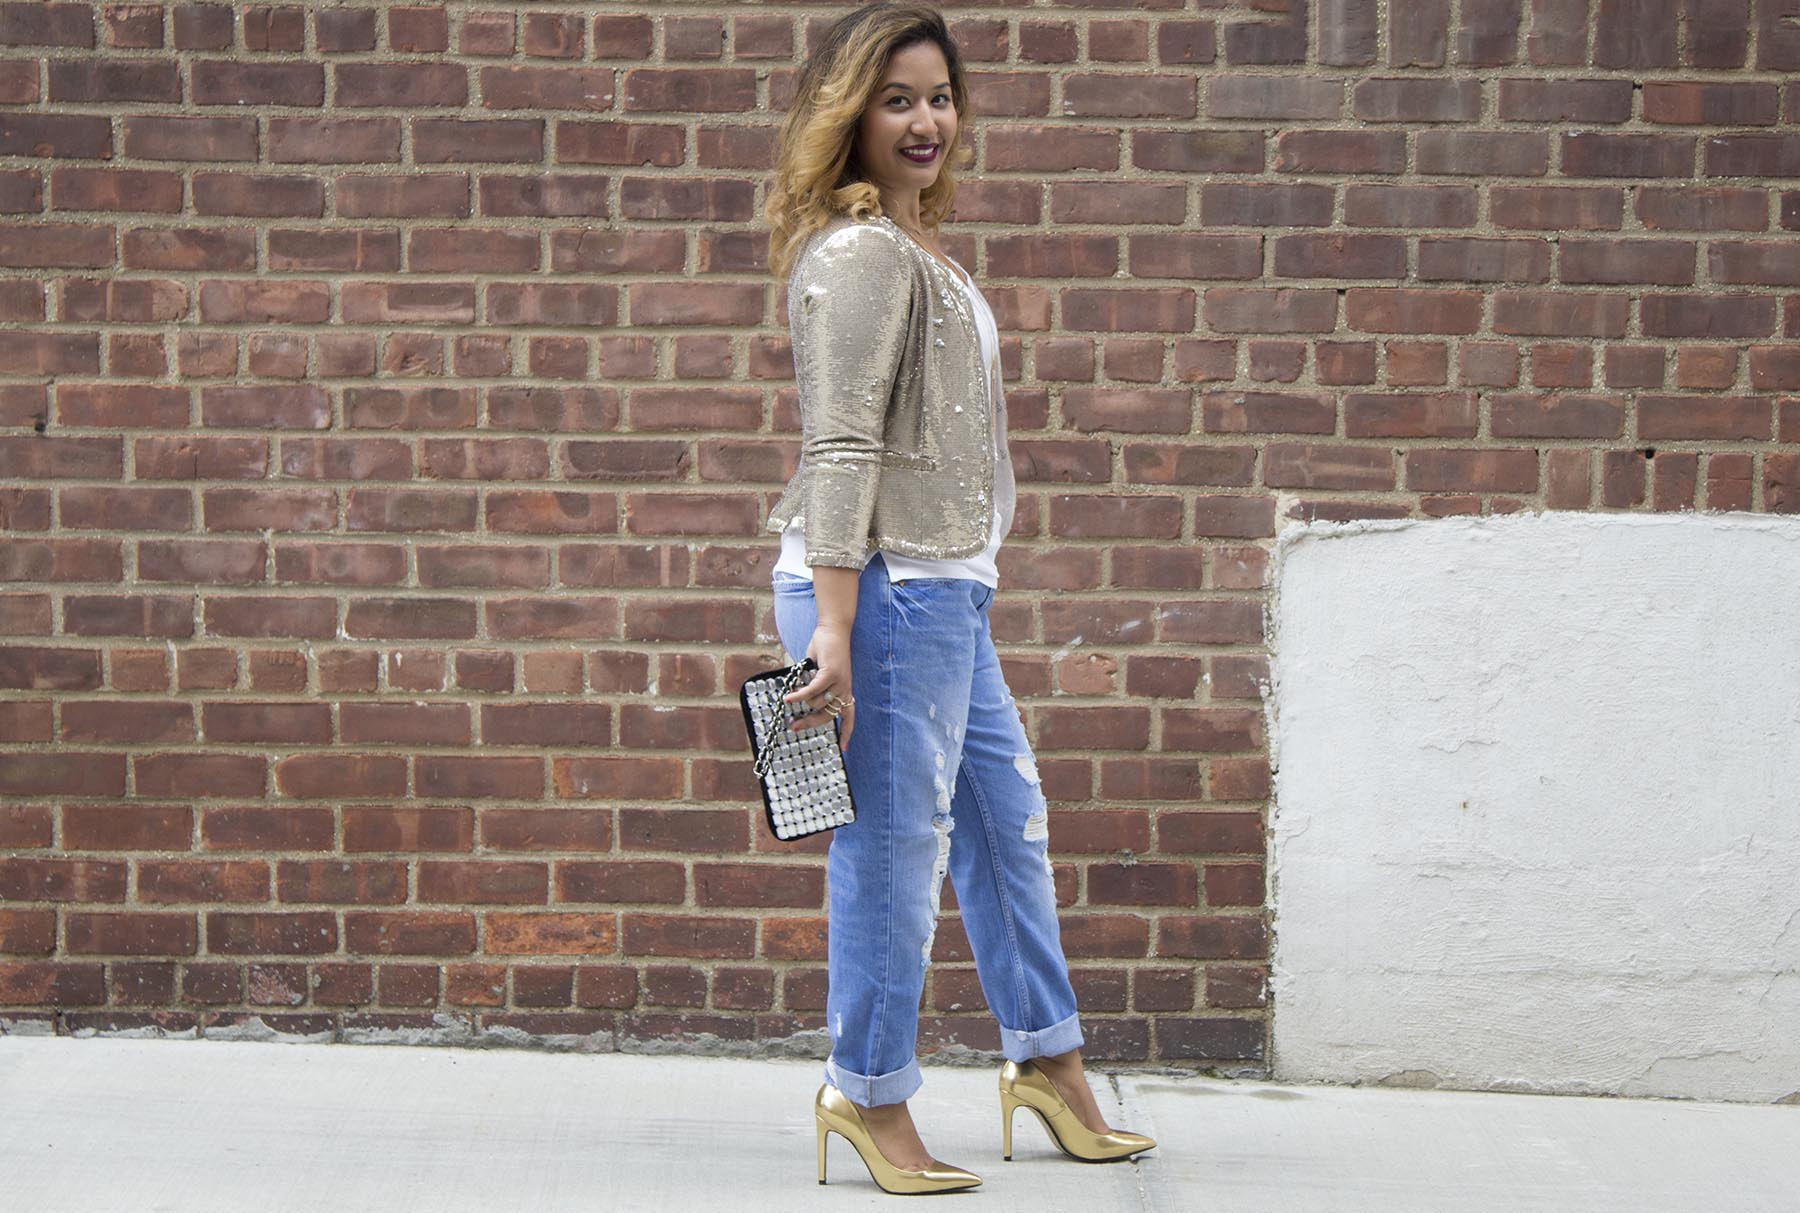 Sequin Jacket & Ripped Jeans 3.jpg